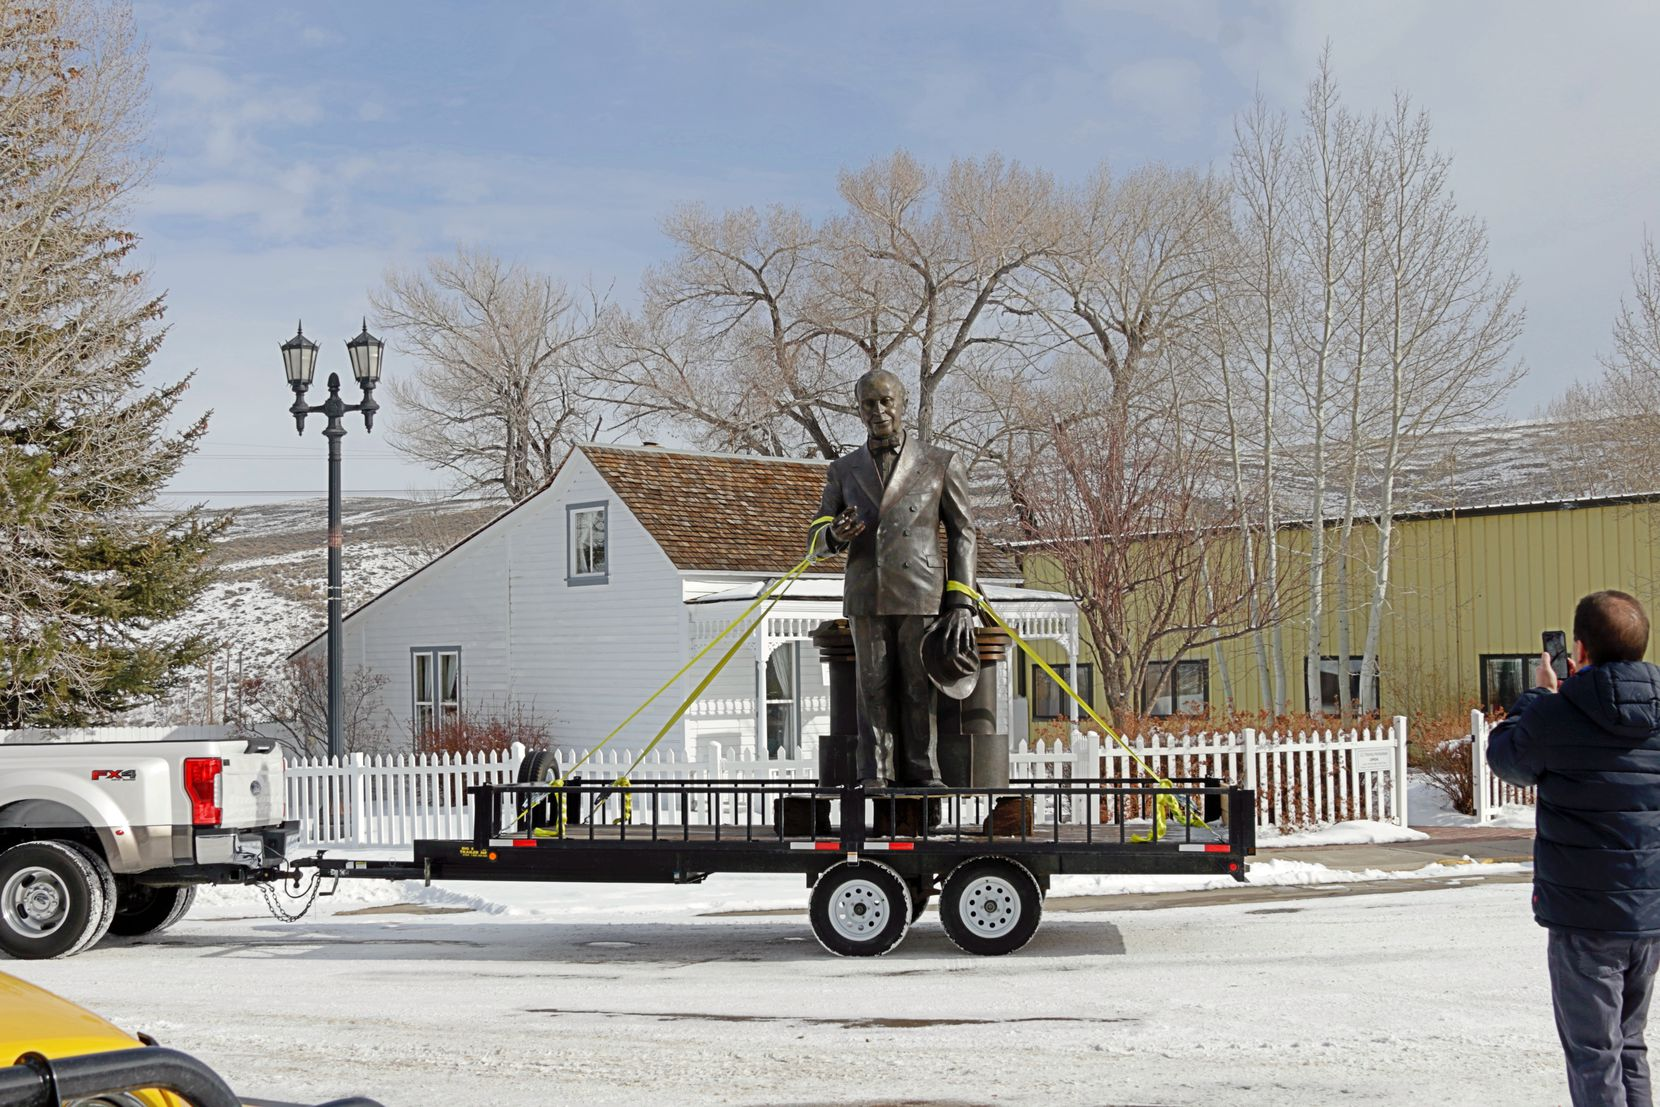 James Cash Penney statue on a trailer drives past the home where Penney lived when he opened his first store. Penney's house is now a museum.